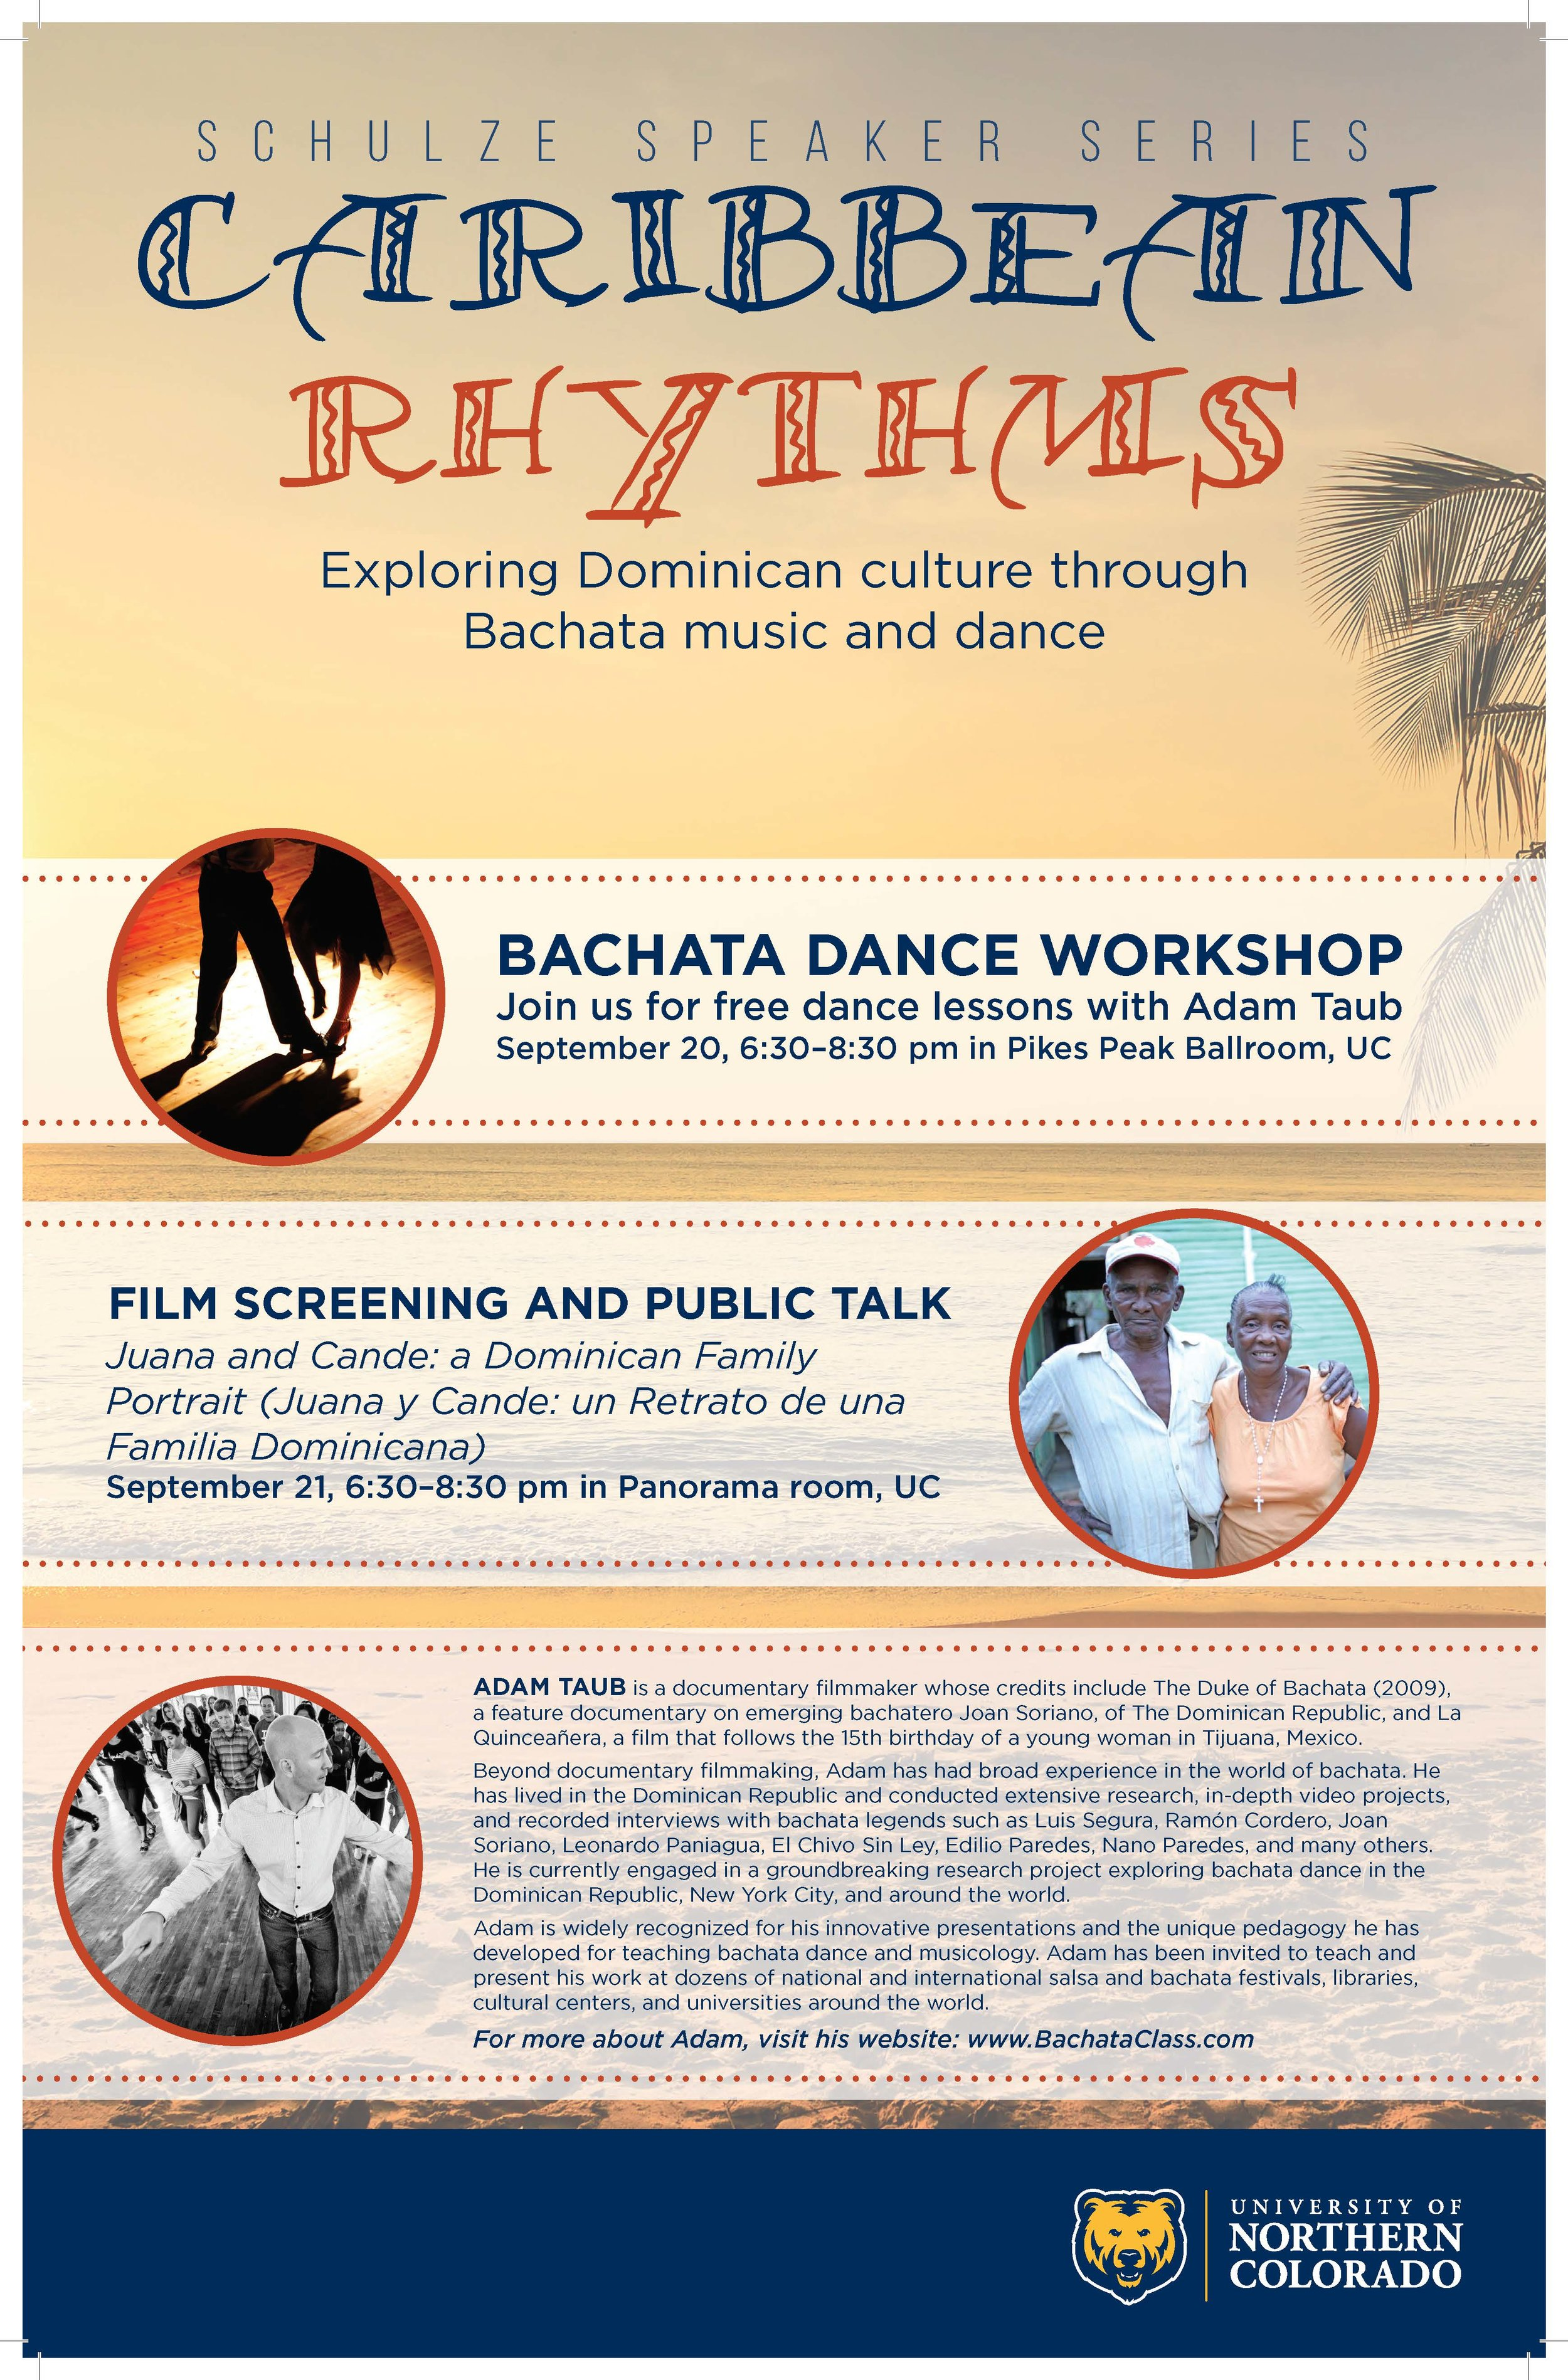 Schulze Speaker Series at UNC Poster. Caribbean Rythms: Exploring Dominican culture through Bachata music and dance.